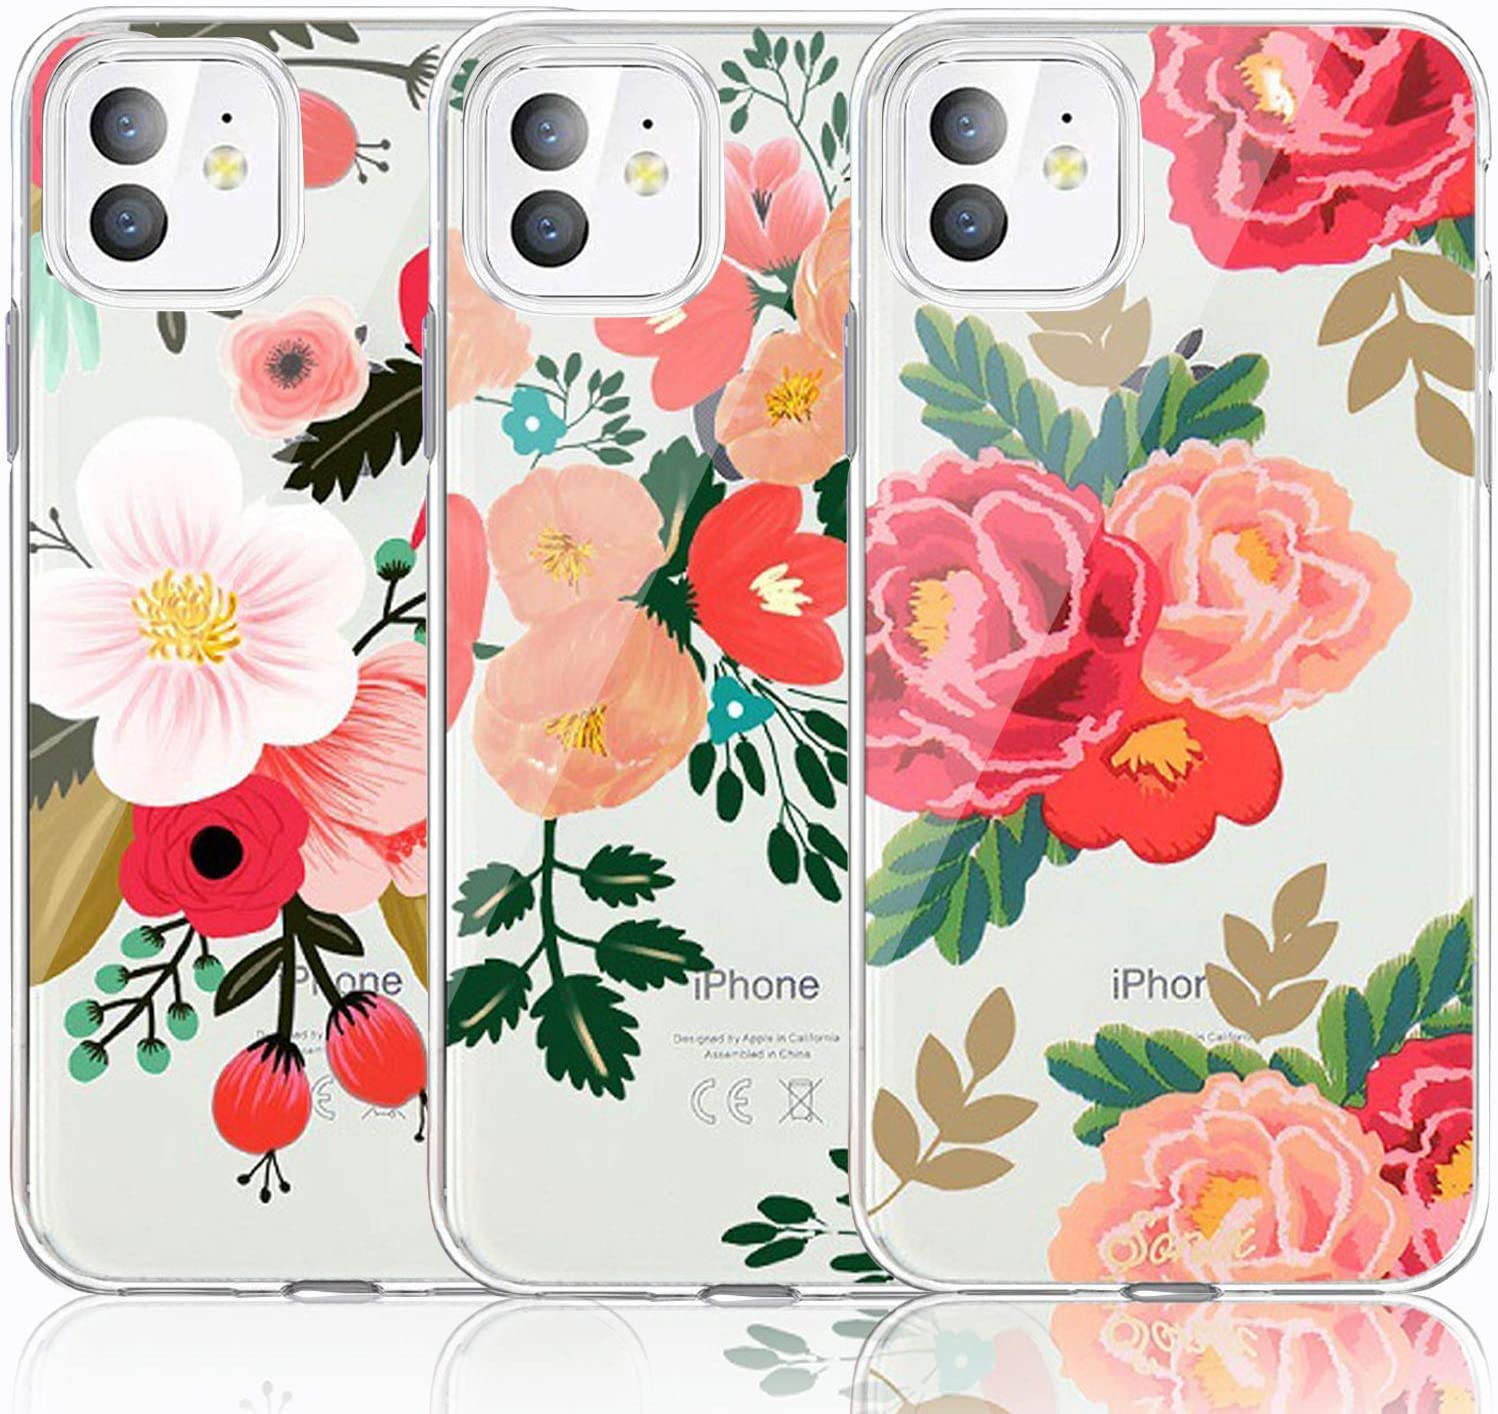 iPhone 11 Case, iPhone 11 Case with Flowers, [3-Pack] CarterLily Watercolor Flowers Floral Pattern Soft Clear Flexible TPU Back Case for Apple iPhone 11 6.1 inch (Redflowers)